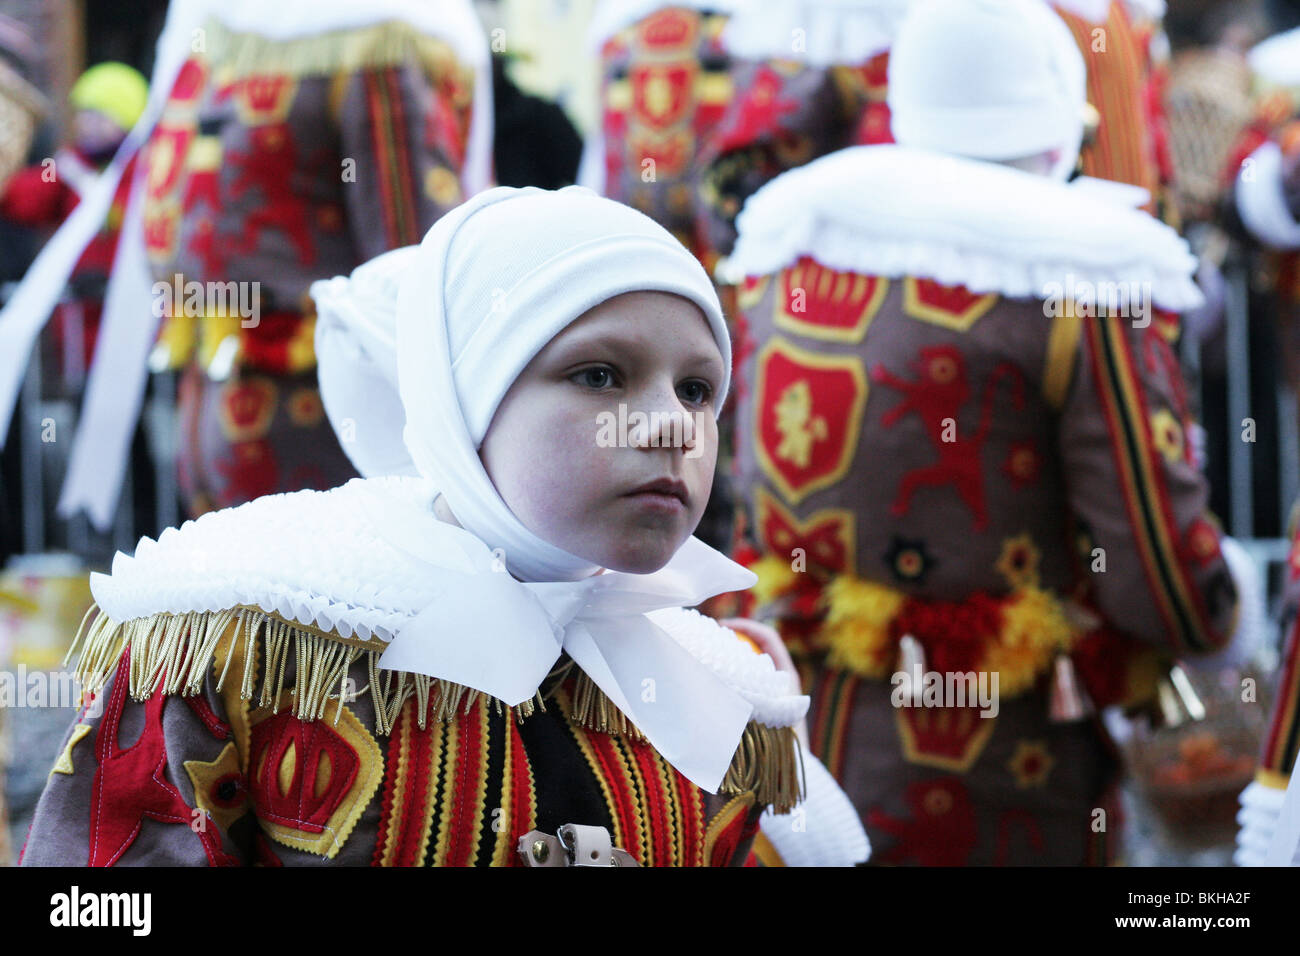 Gilles of Binche Carnival.  Ancient and representative cultural event of Wallonia, Belgium - Stock Image